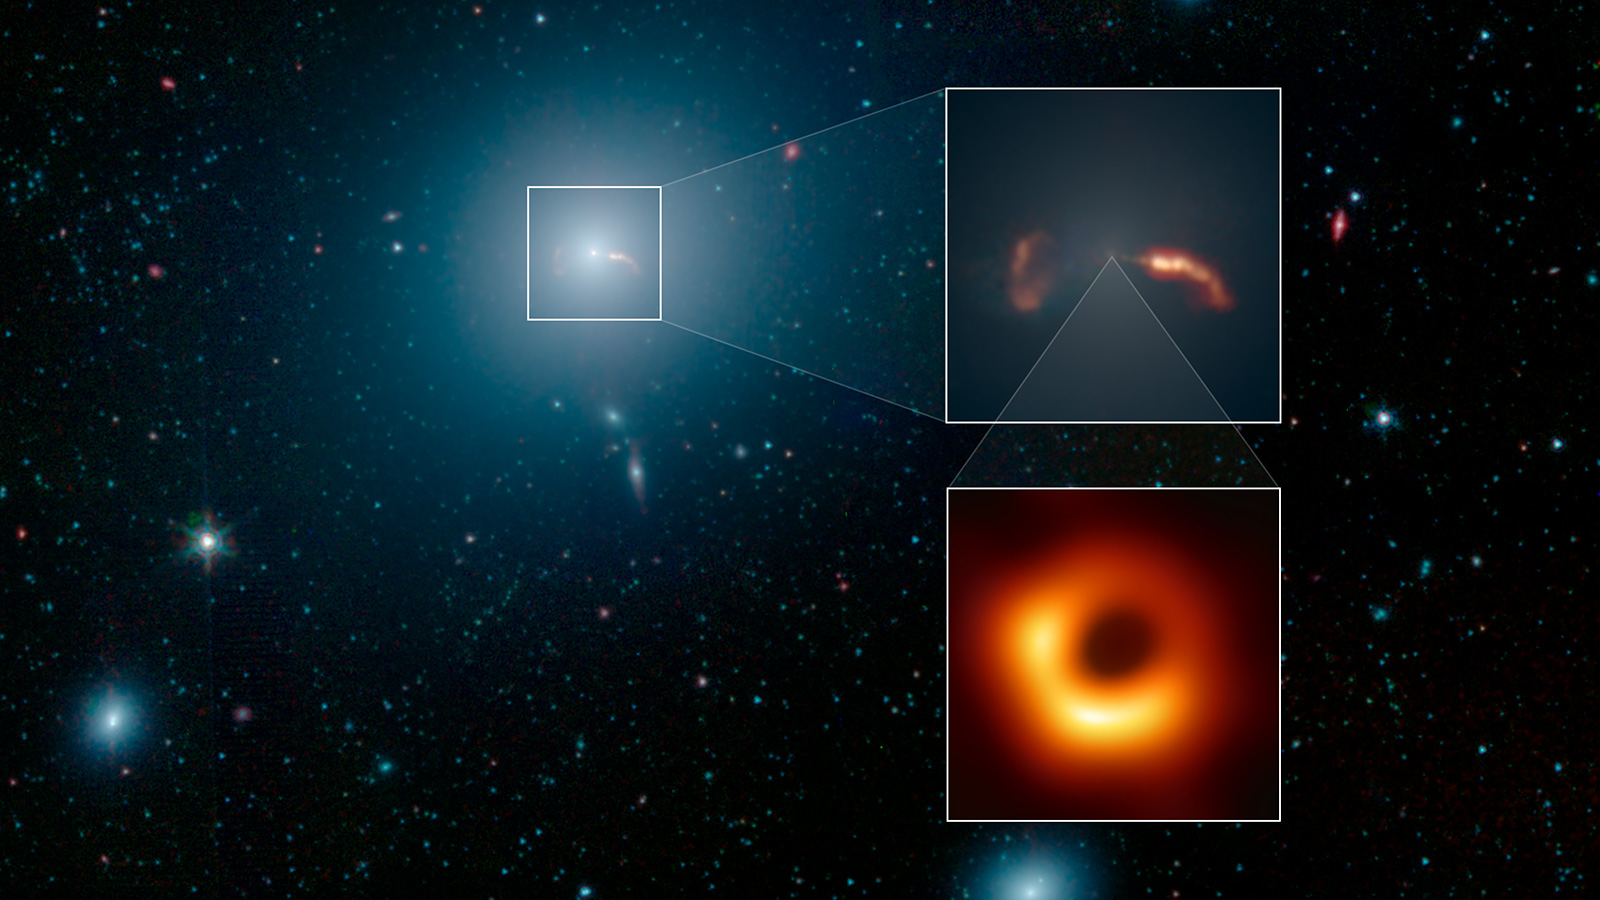 The Galaxy, the Jet and the Black Hole